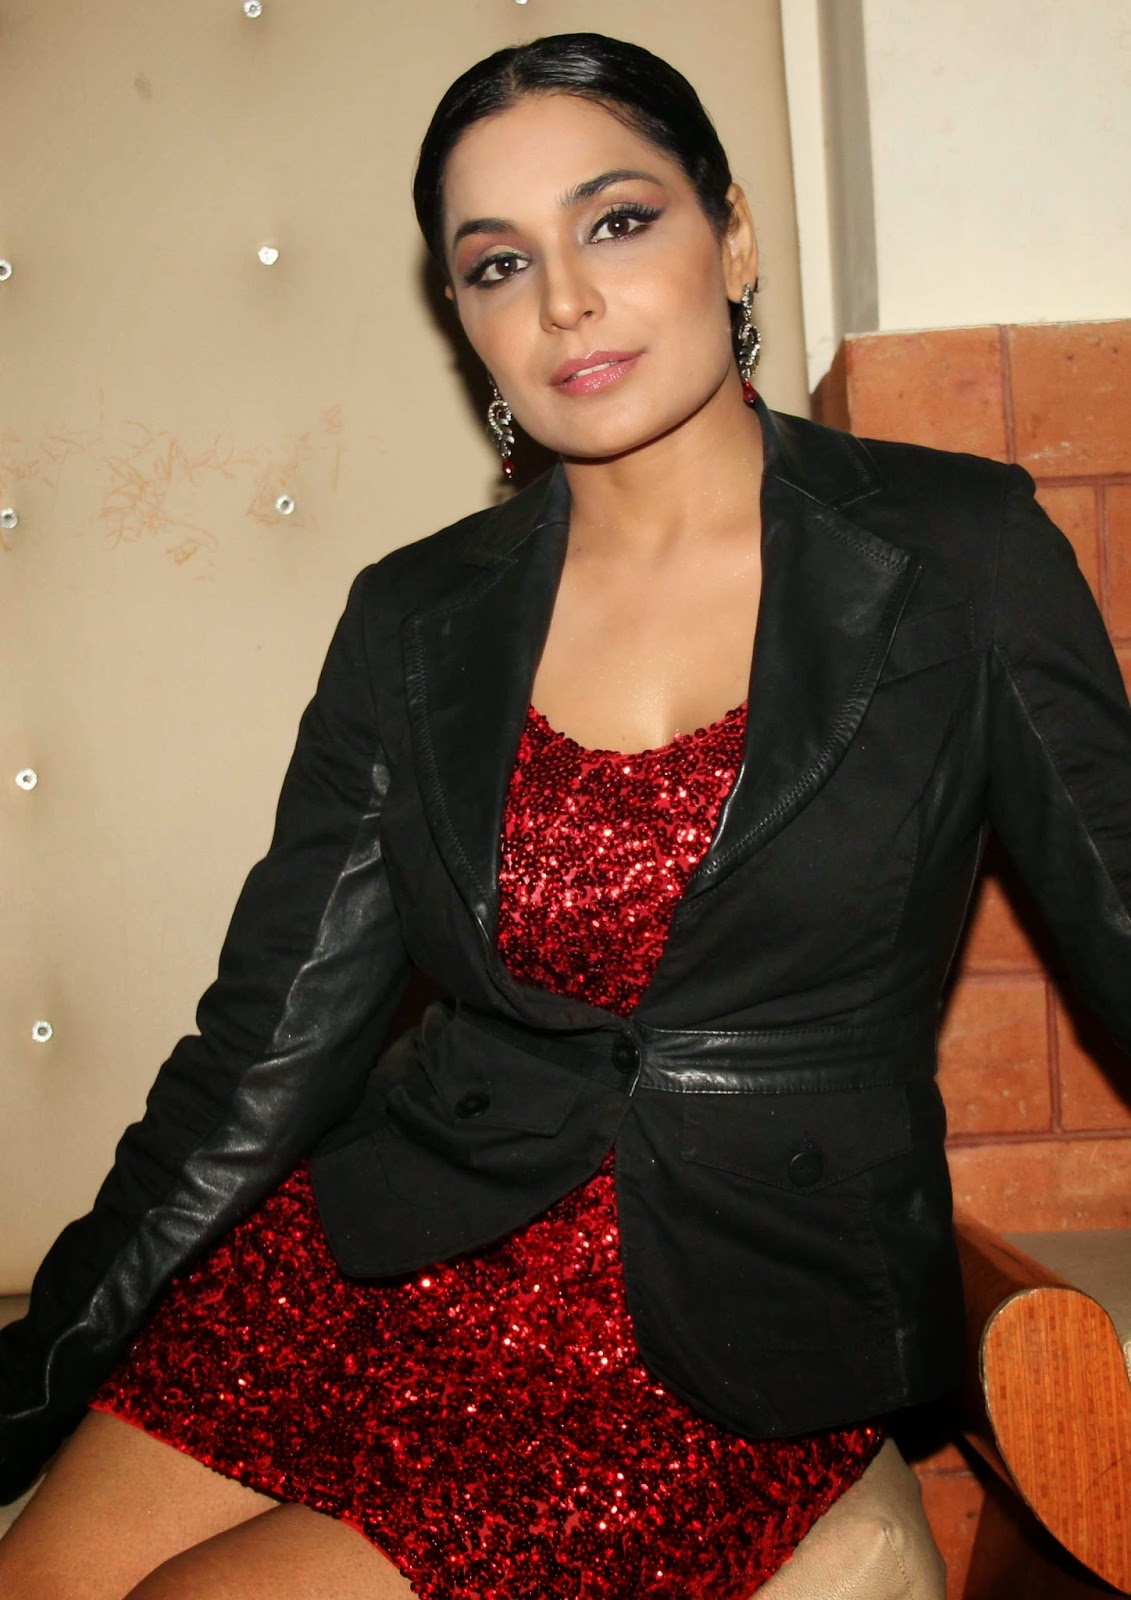 High Quality Bollywood Celebrity Pictures Pakistani -6803